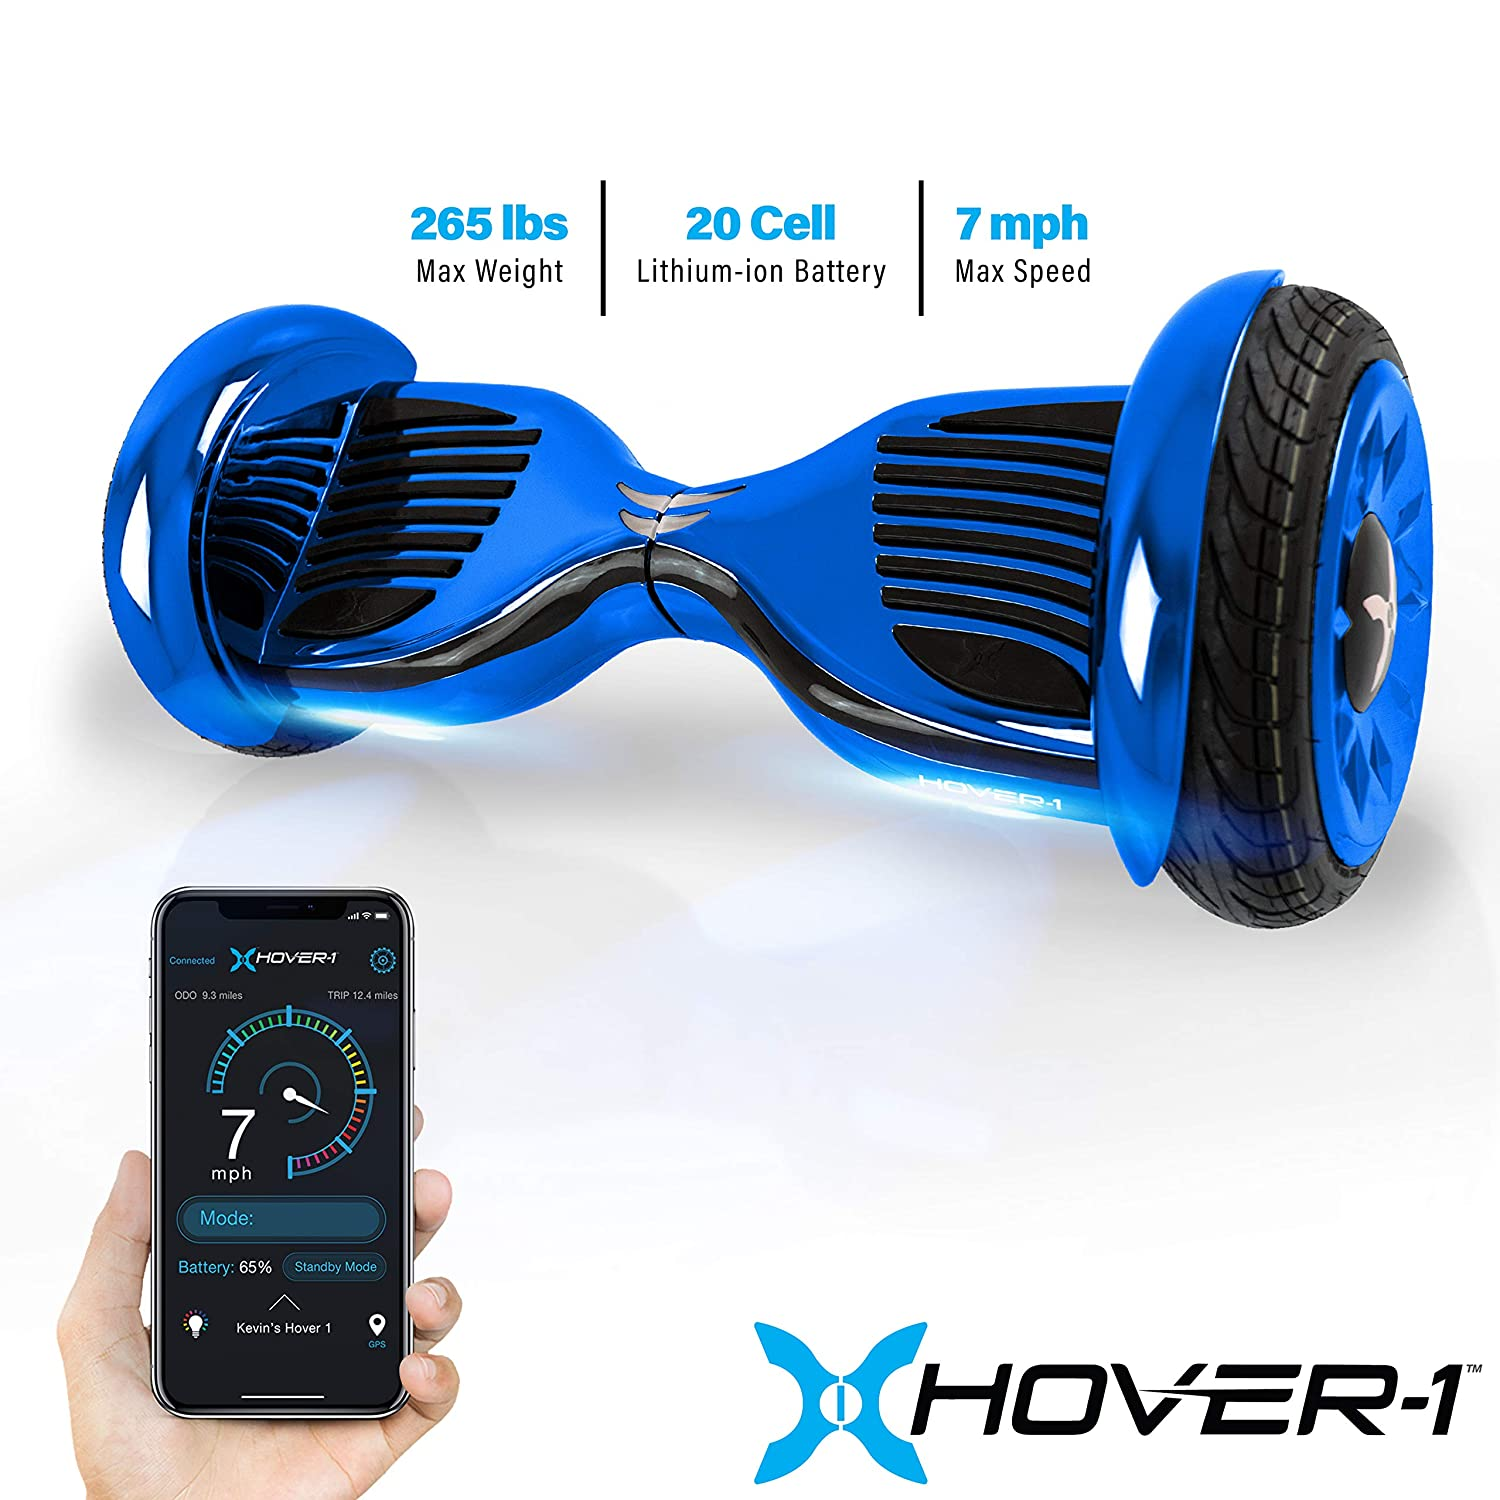 Amazon.com : HOVER-1 Titan All-Terrain Hoverboard Electric ...